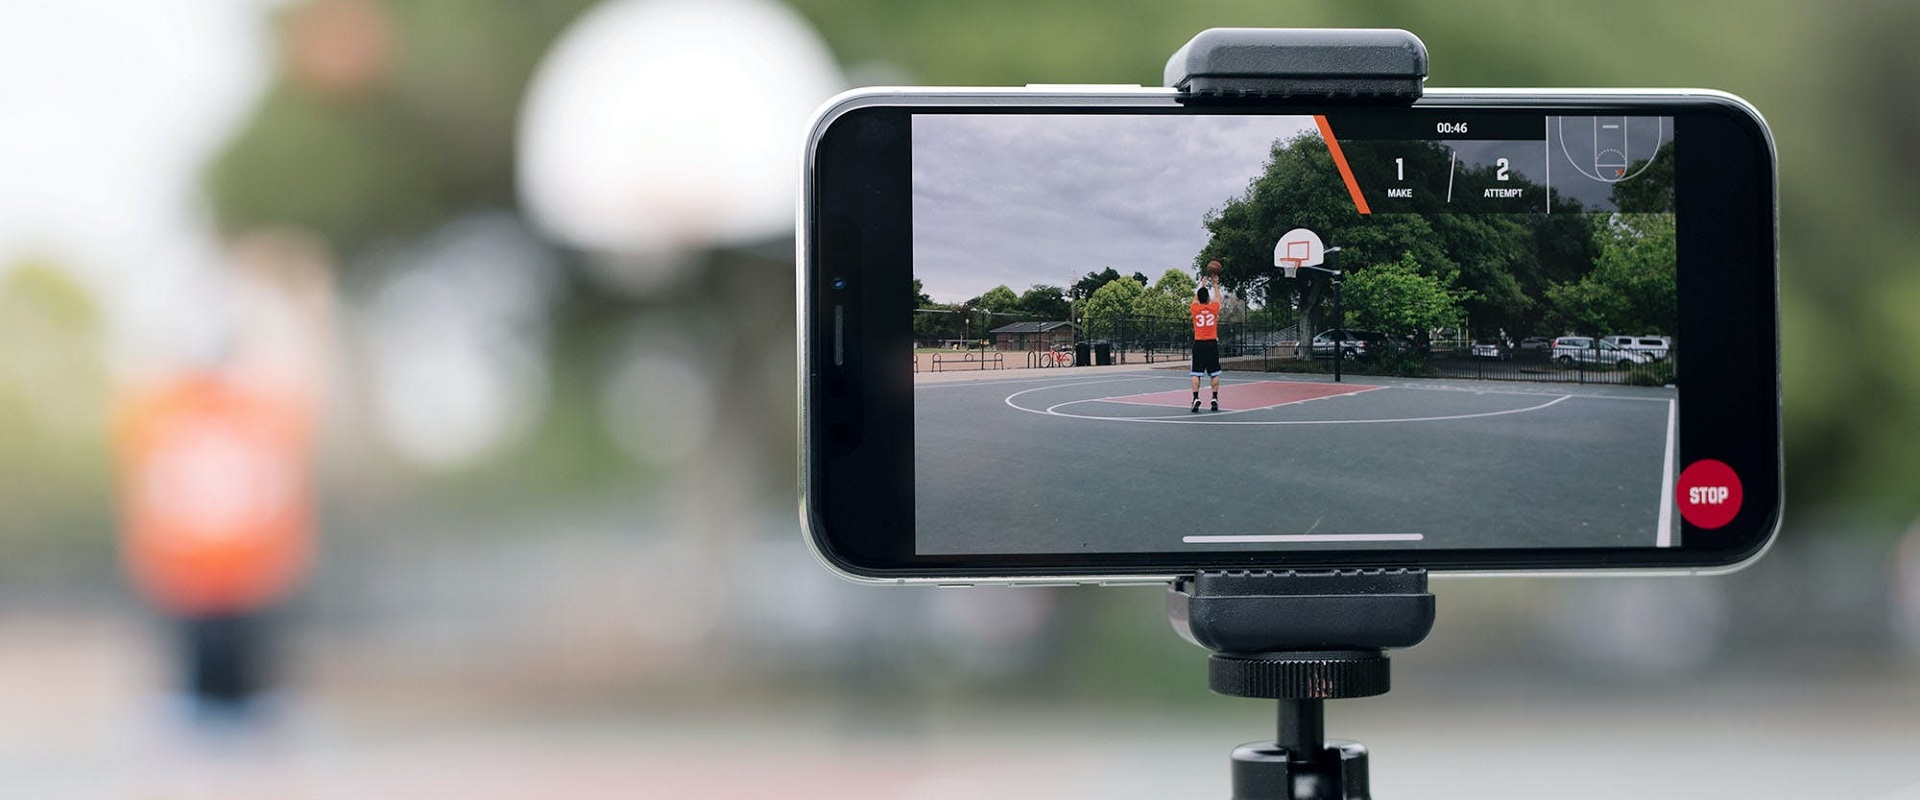 'HOMECOURT AI' PROVIDES FREE PRACTICE SESSIONS THROUGH THEIR APP